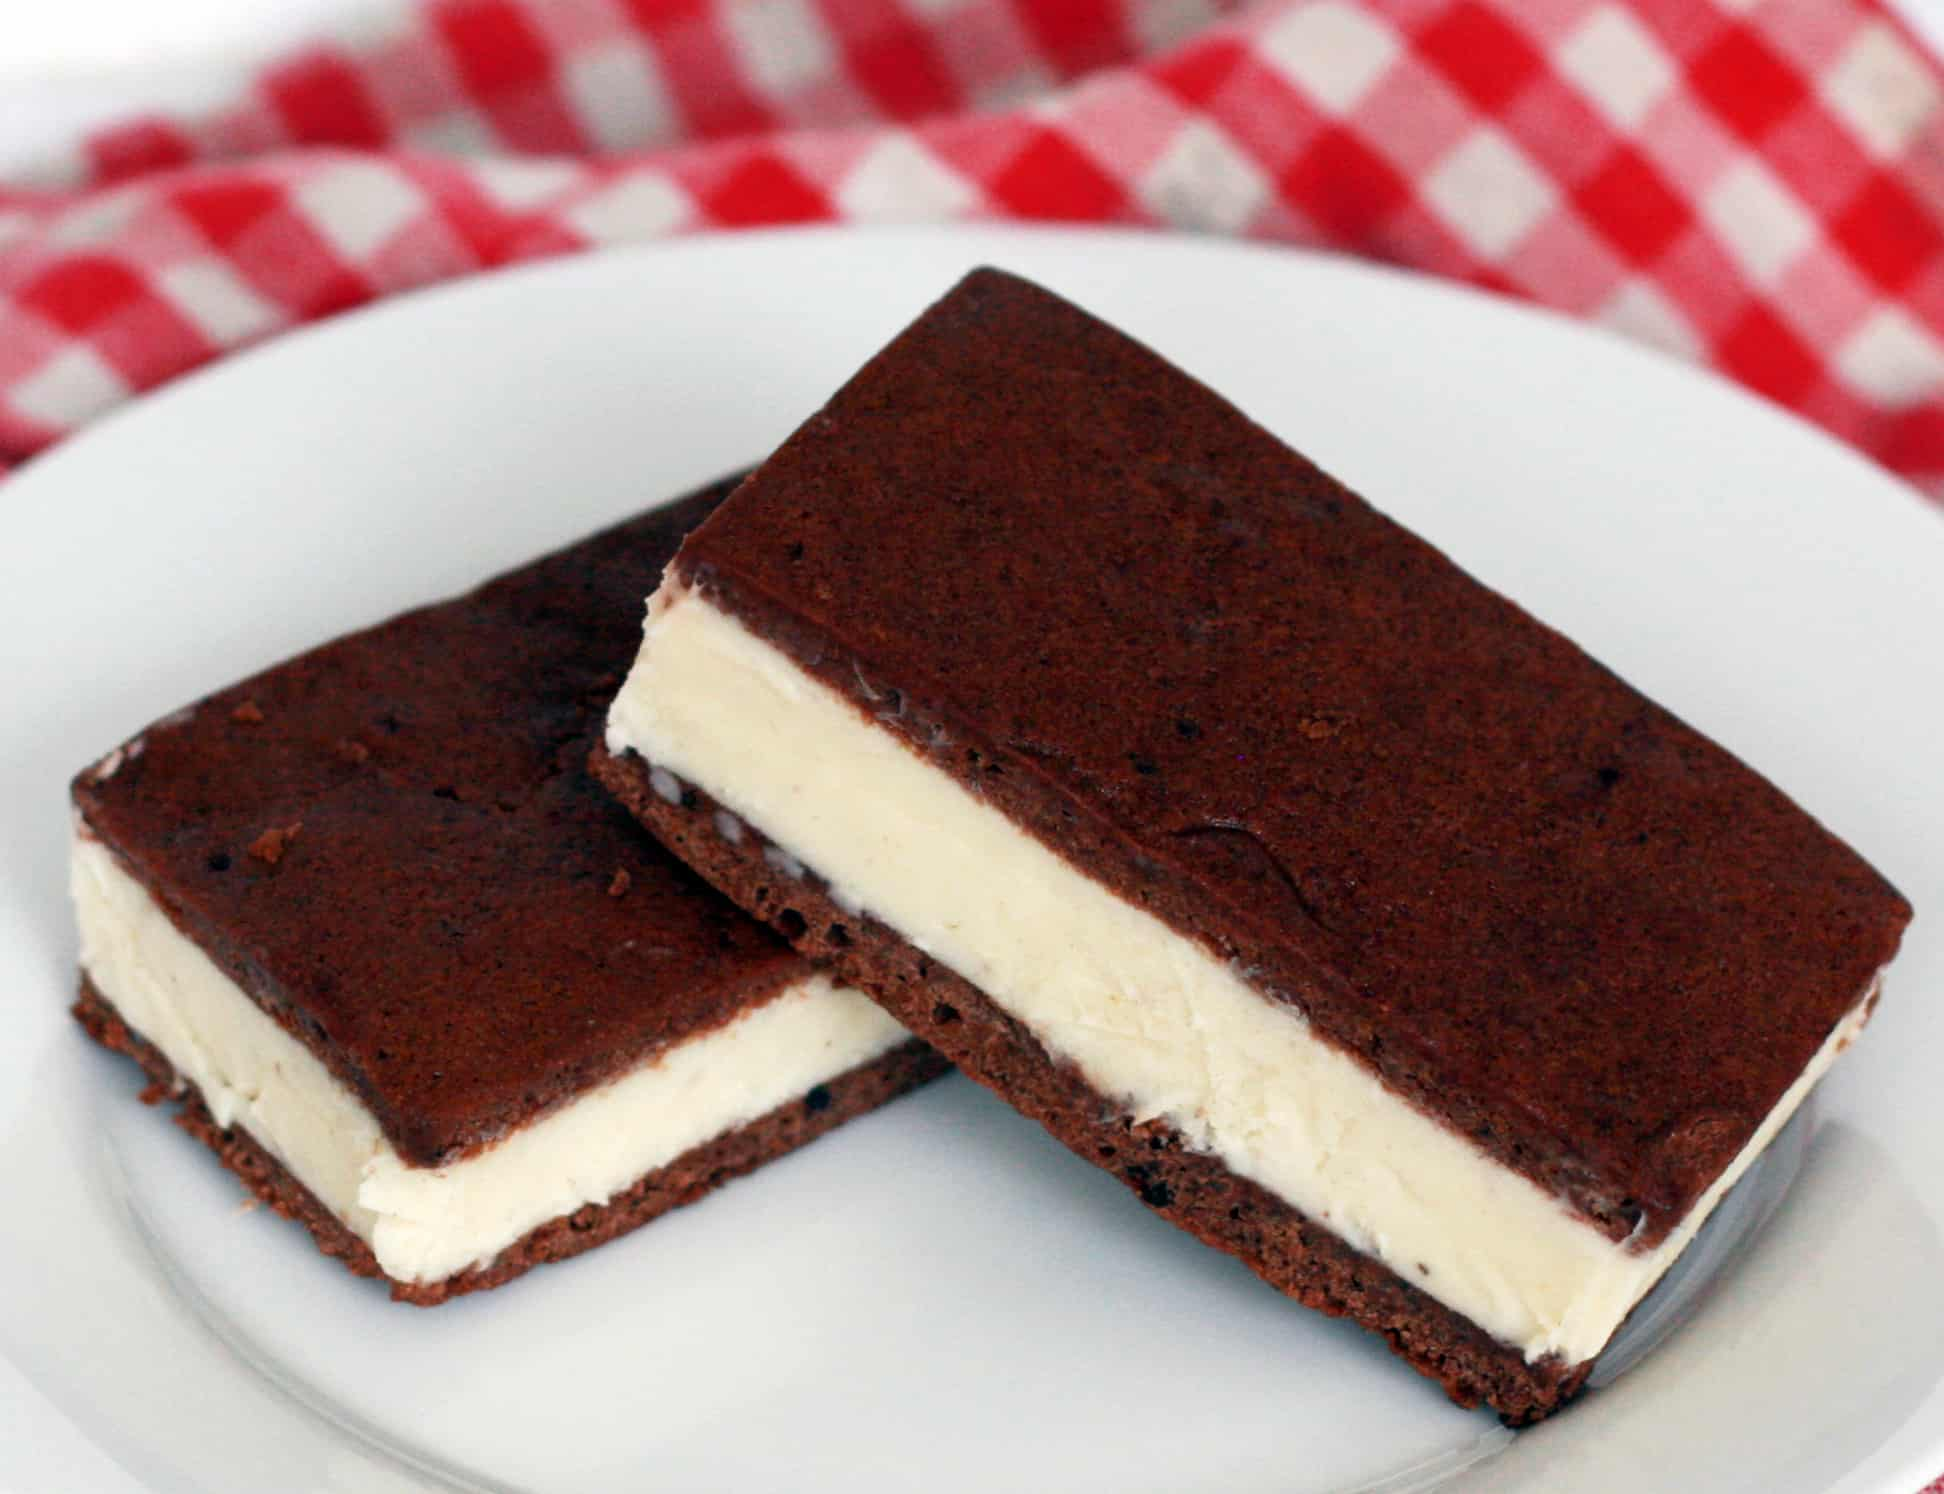 Classic vanilla ice cream sandwich with homemade chocolate cookie